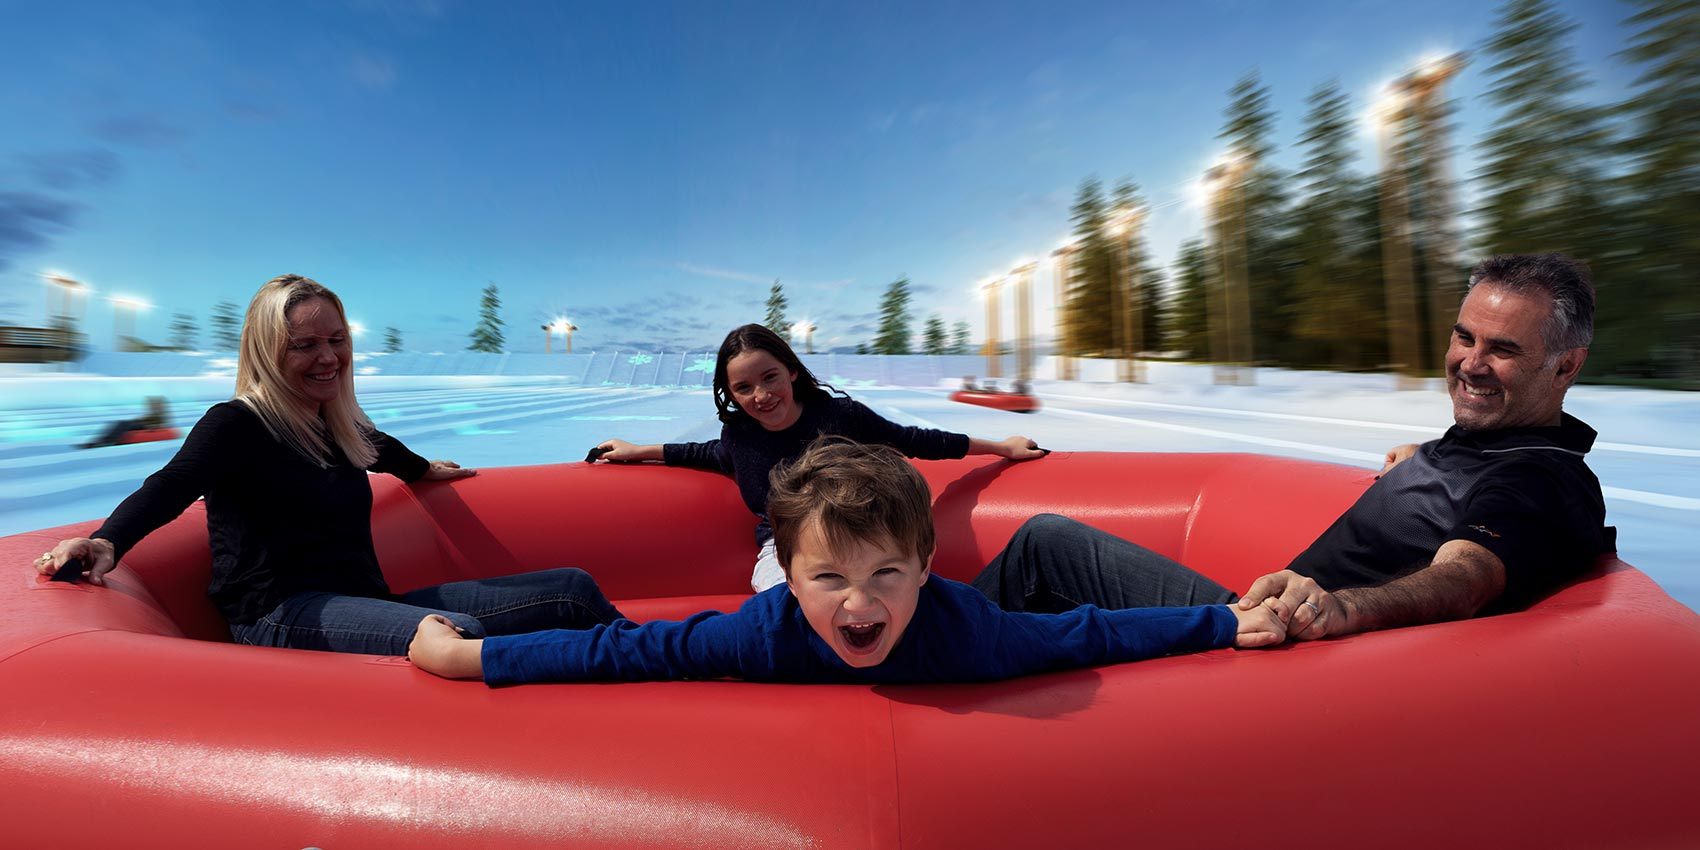 Family In Big Tube On Snowy Slopes